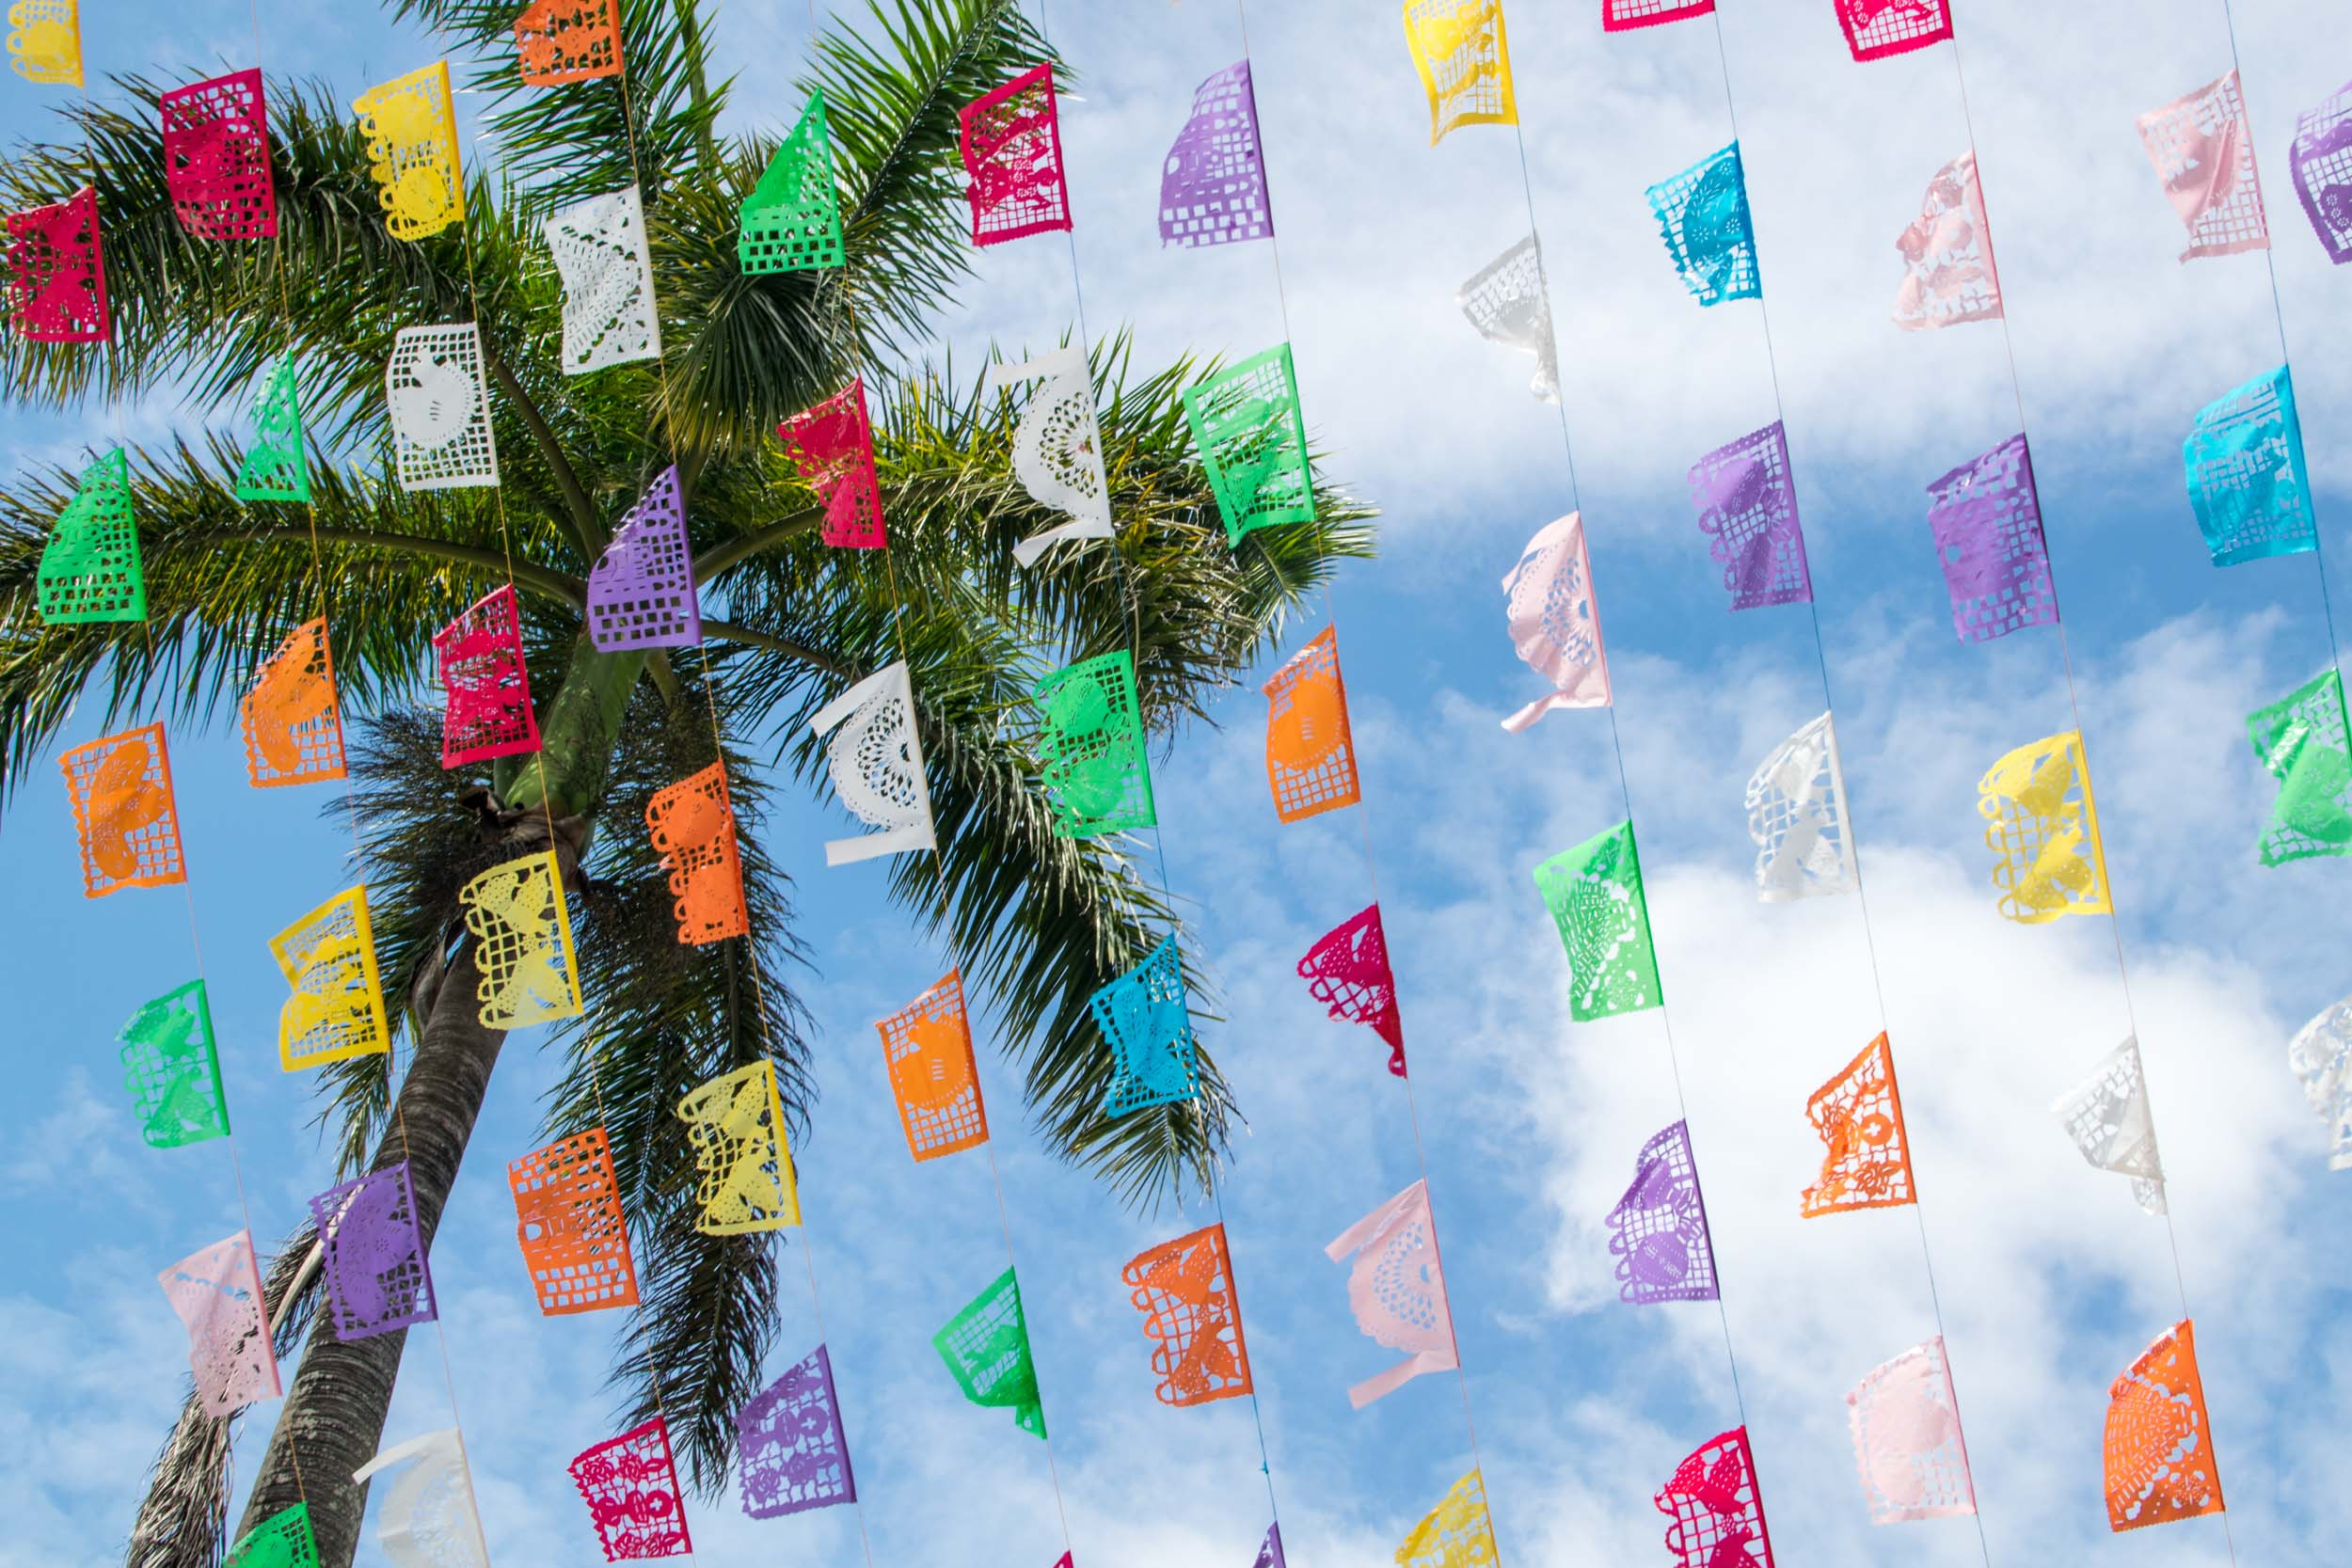 Coloured flags against a blue sky with palm tree, Mexico.